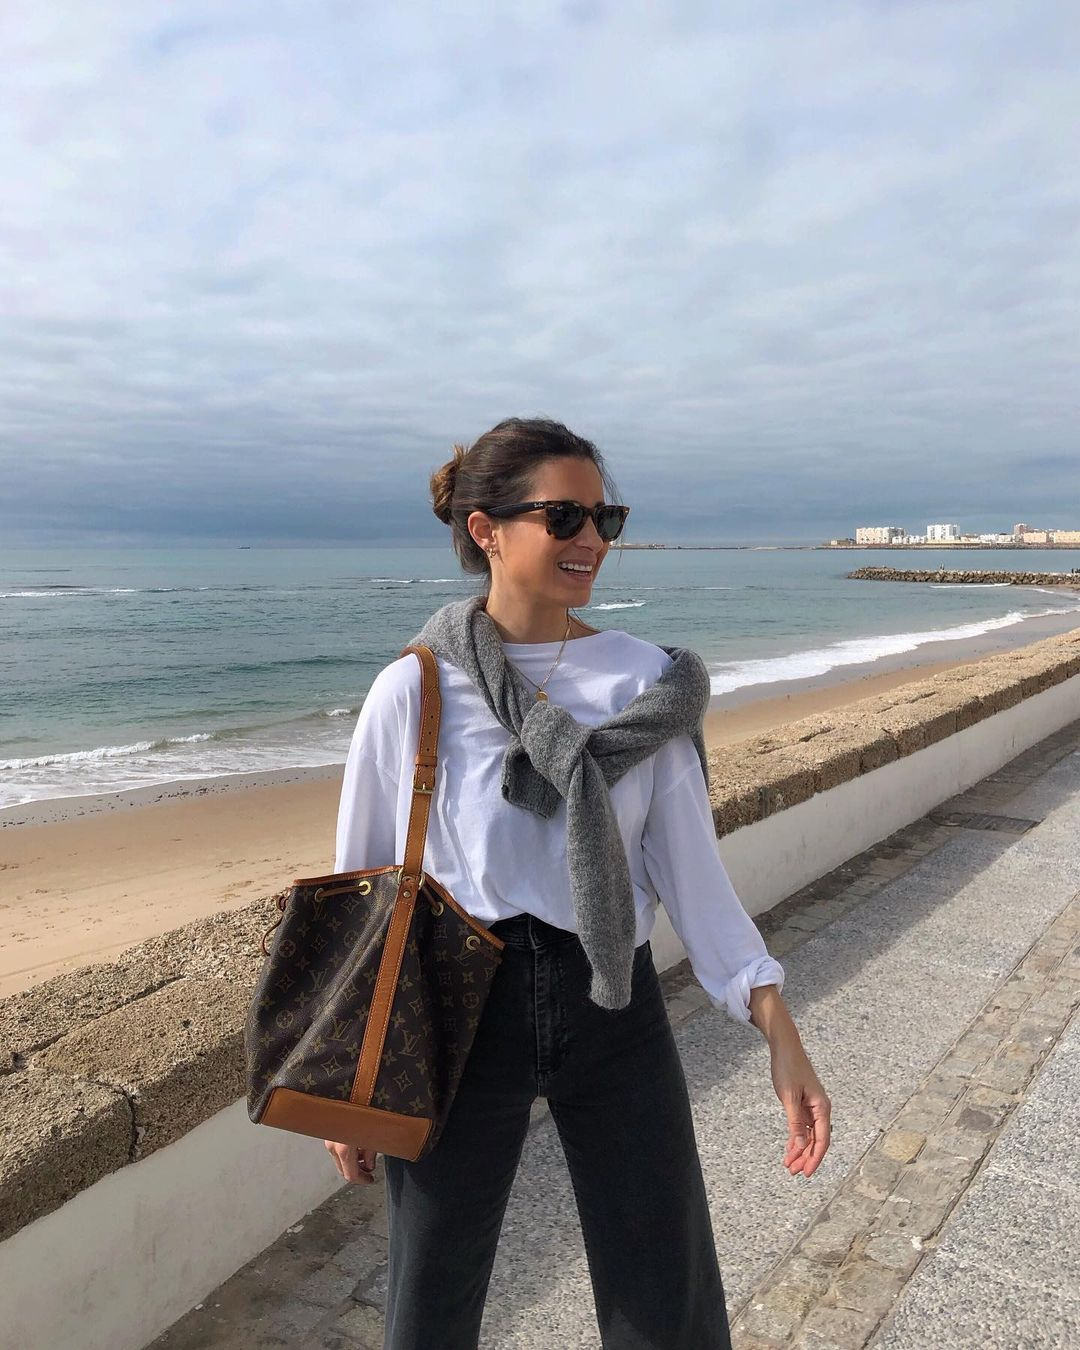 Everyday Casual Spring Outfit Idea from Maria Valdes — White Shirt With a Gray Sweater Over The Shoulders, Ray-Ban Wayfarer Sunglasses, Black Jeans, and Louis Vuitton Bucket Bag